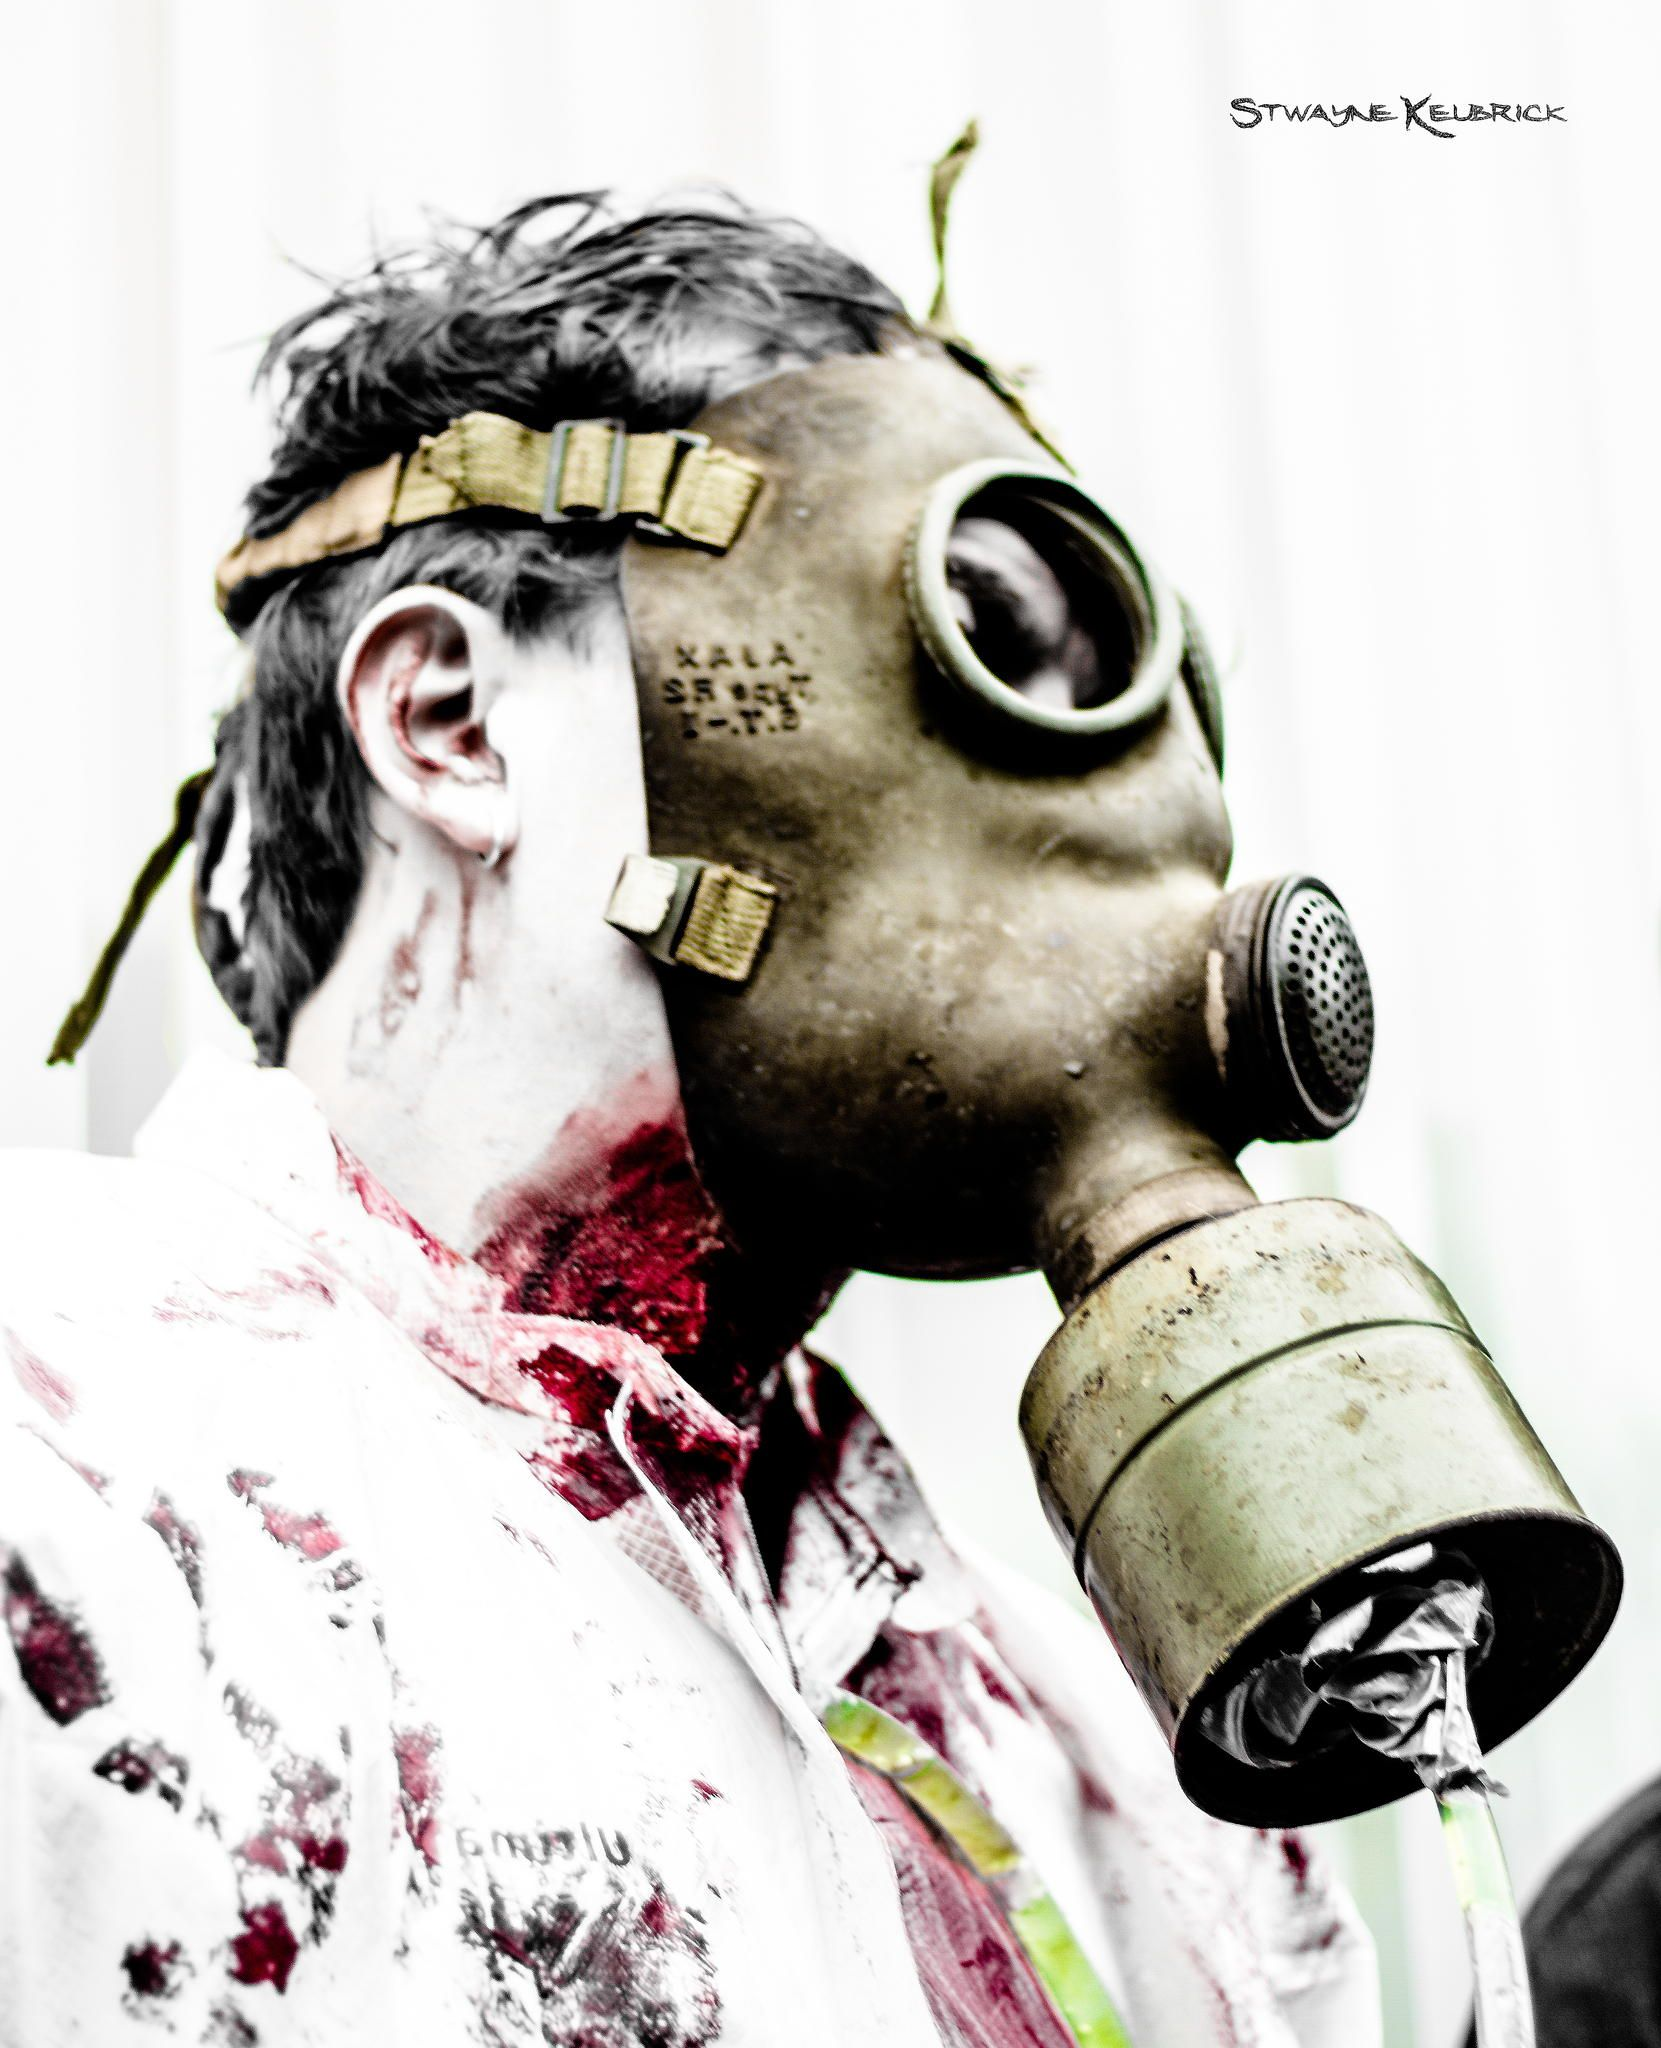 Fearless of a gas mask guy by Stwayne Keubrick on 500px